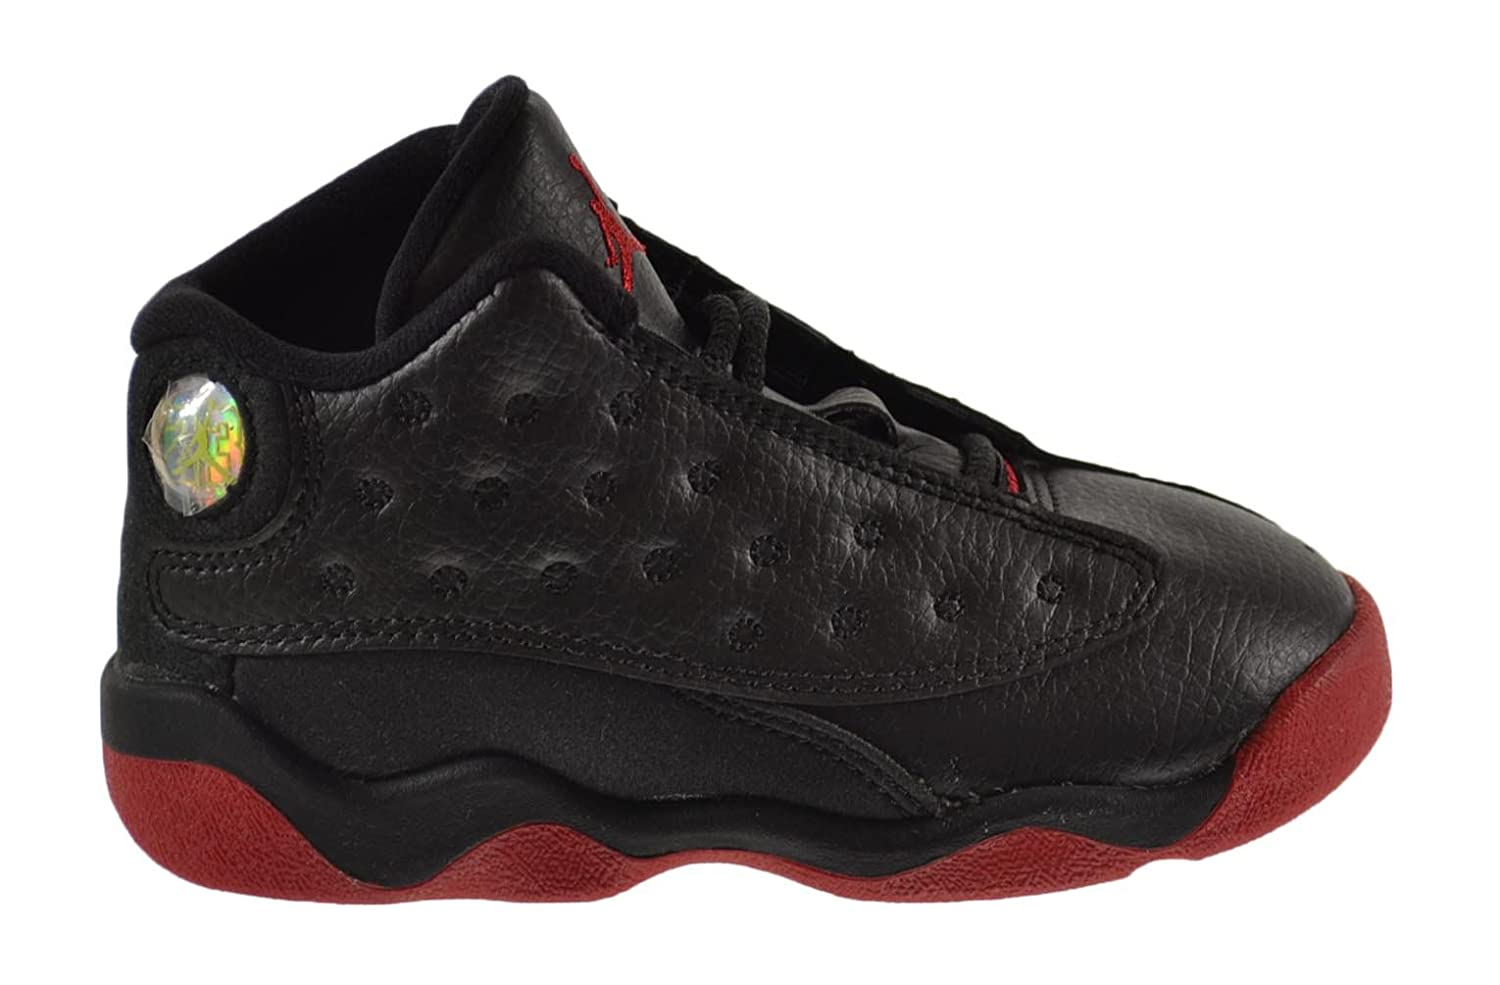 sale retailer 441fc 26375 Amazon.com   Jordan 13 Retro